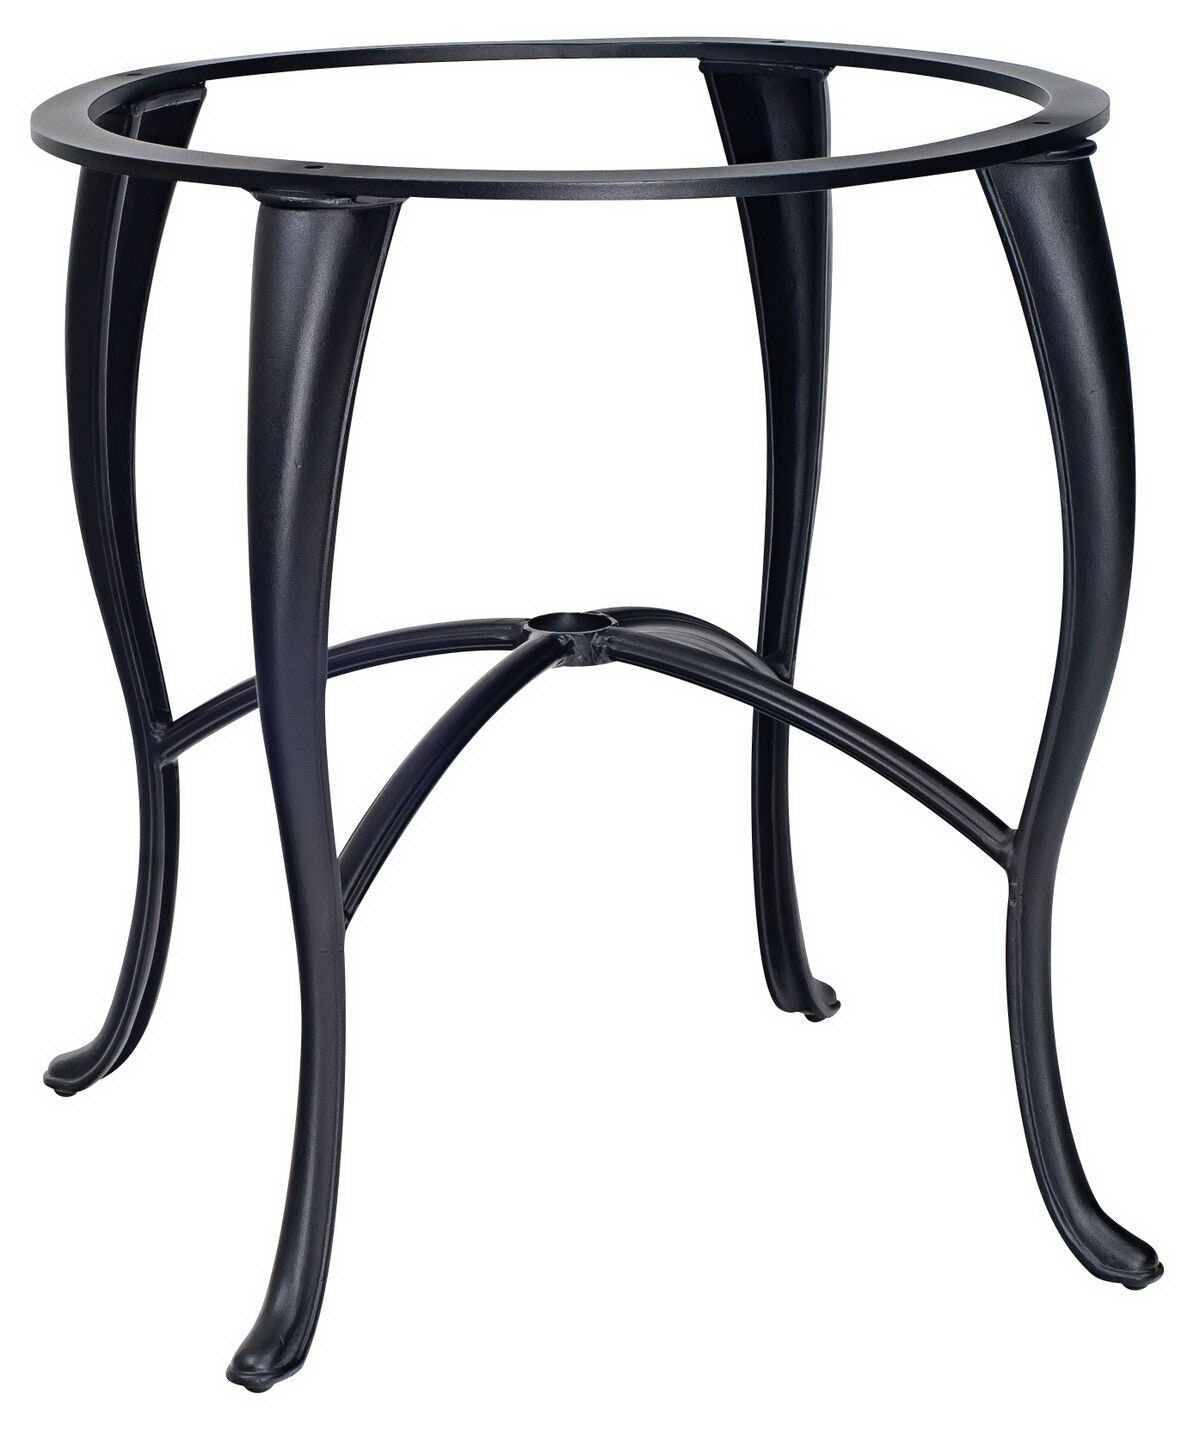 Charmant Woodard Table Bases   Cabriole Counter Height Base By Woodard 2G5500 Call  For Prices   888.643.6003